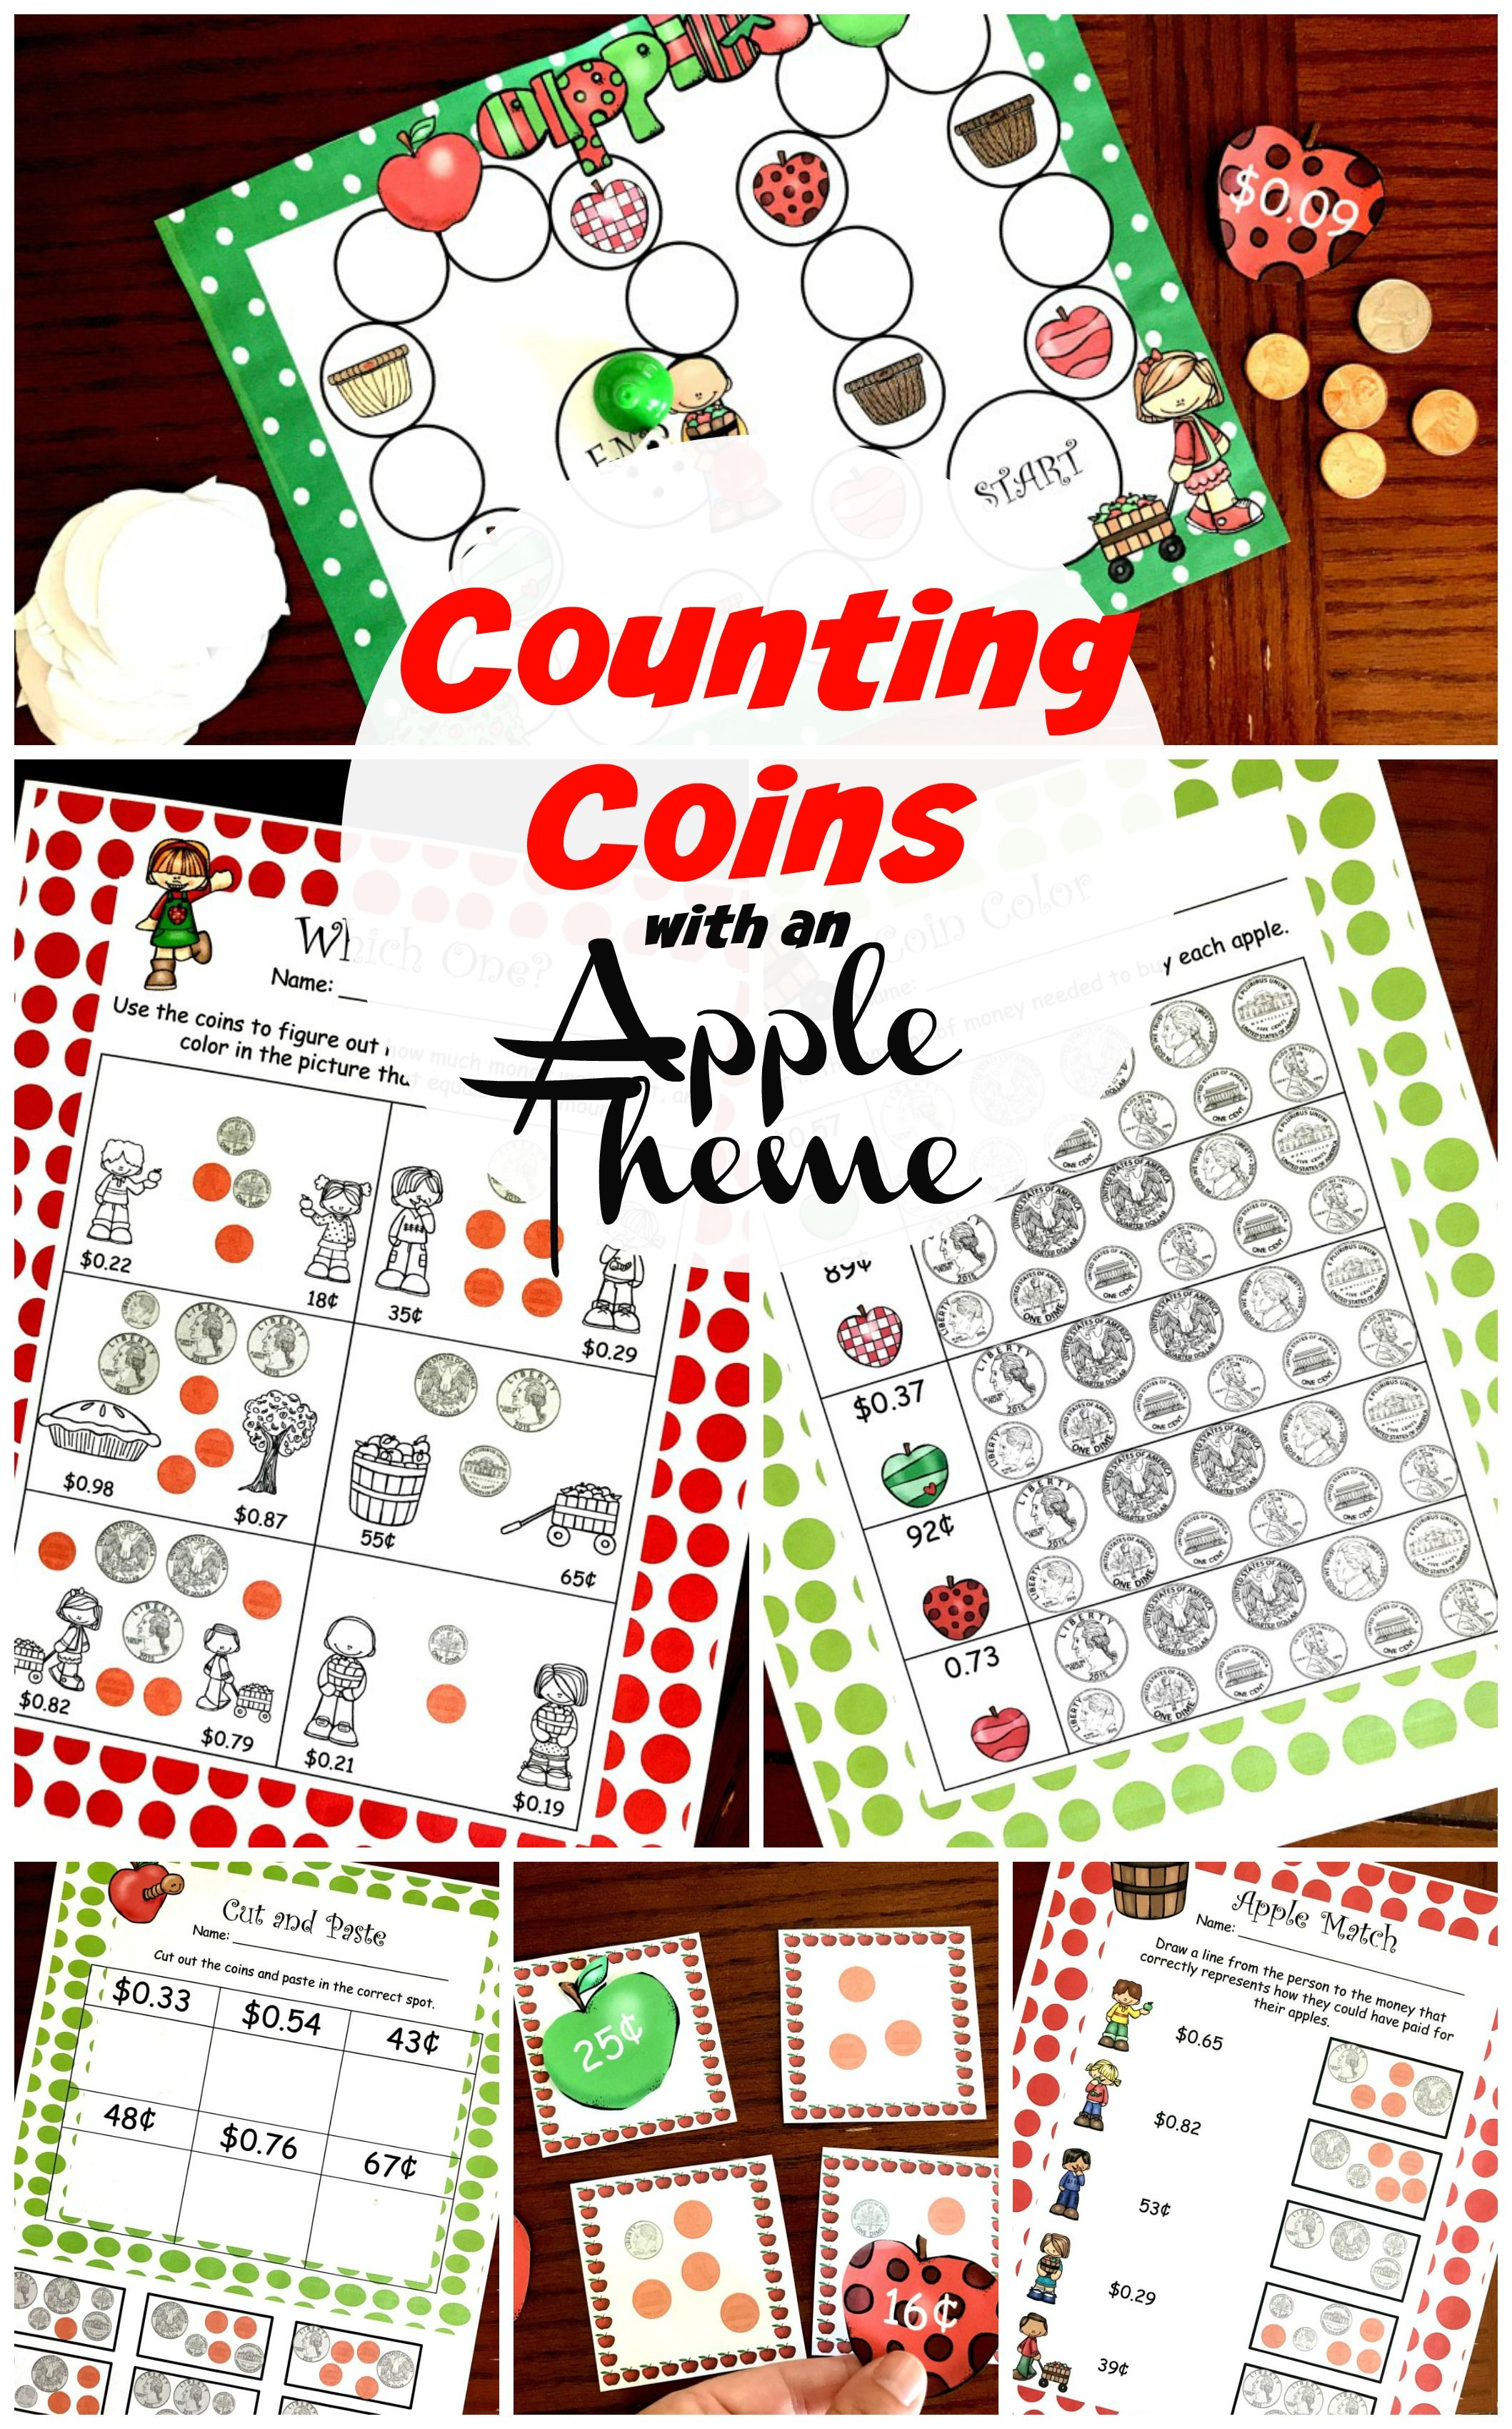 Practice Counting Coins With A Game Coin Match And Four Worksheets Two Worksheets Are Coloring Sheets Counting Coins Activities Counting Coins Money Games [ 3400 x 2117 Pixel ]